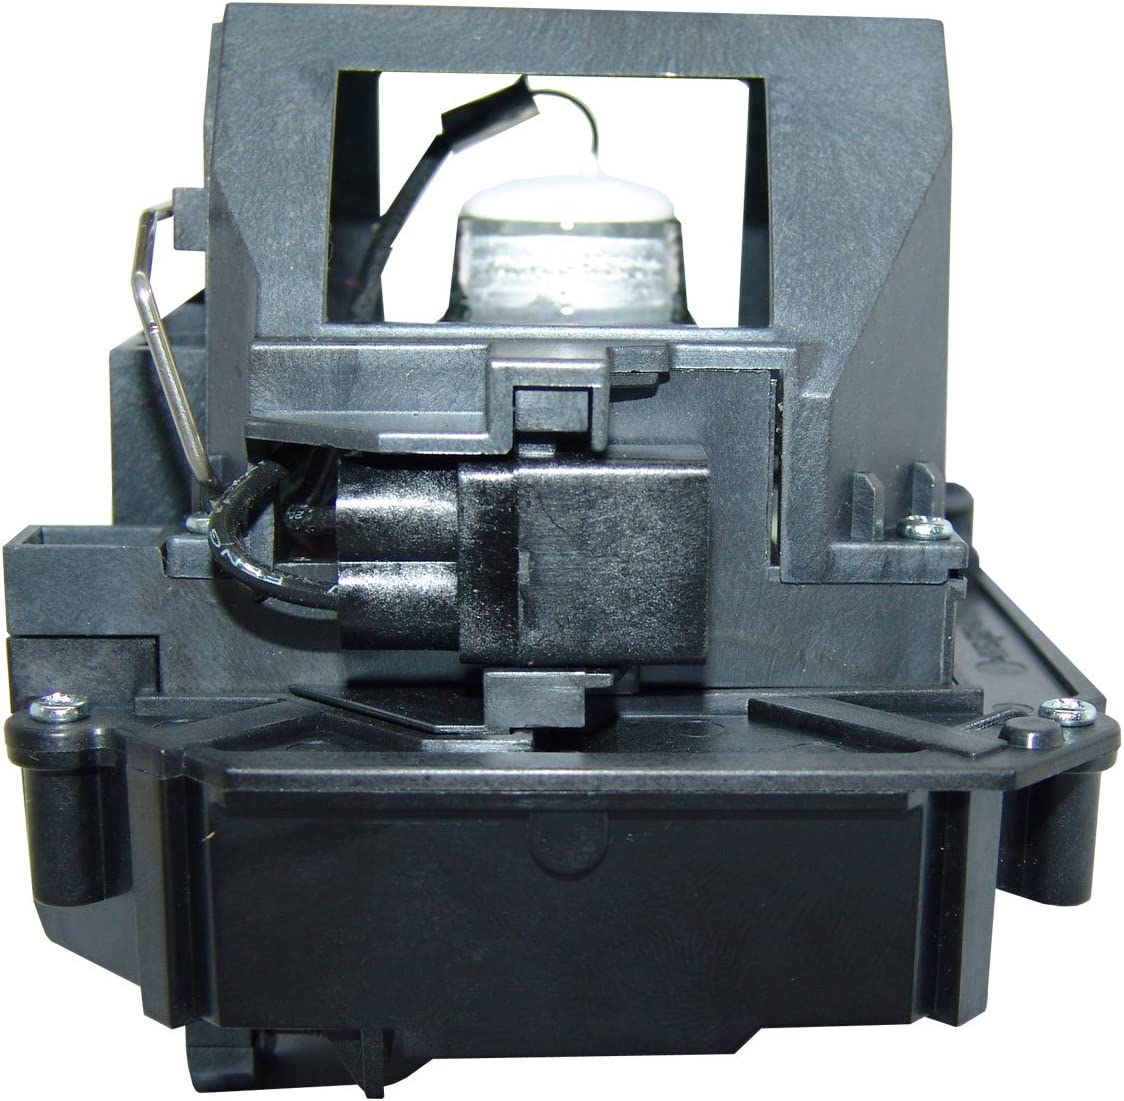 Epson ELPLP68 Projector Lamp with Housing V13H010L68 (Original)